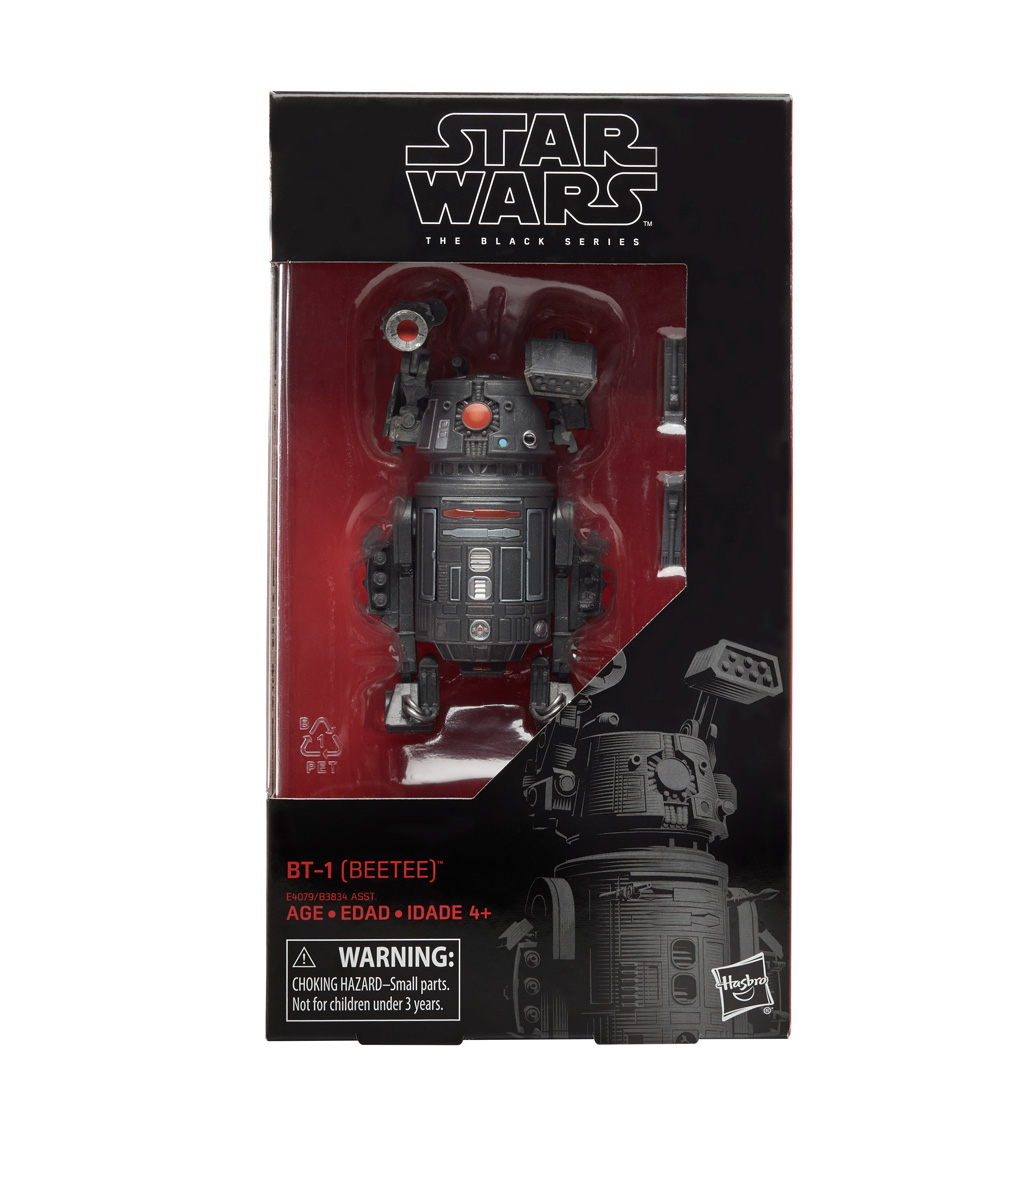 star-wars-the-black-series-6-inch-figure-assortment-bt-1-in-pck-1